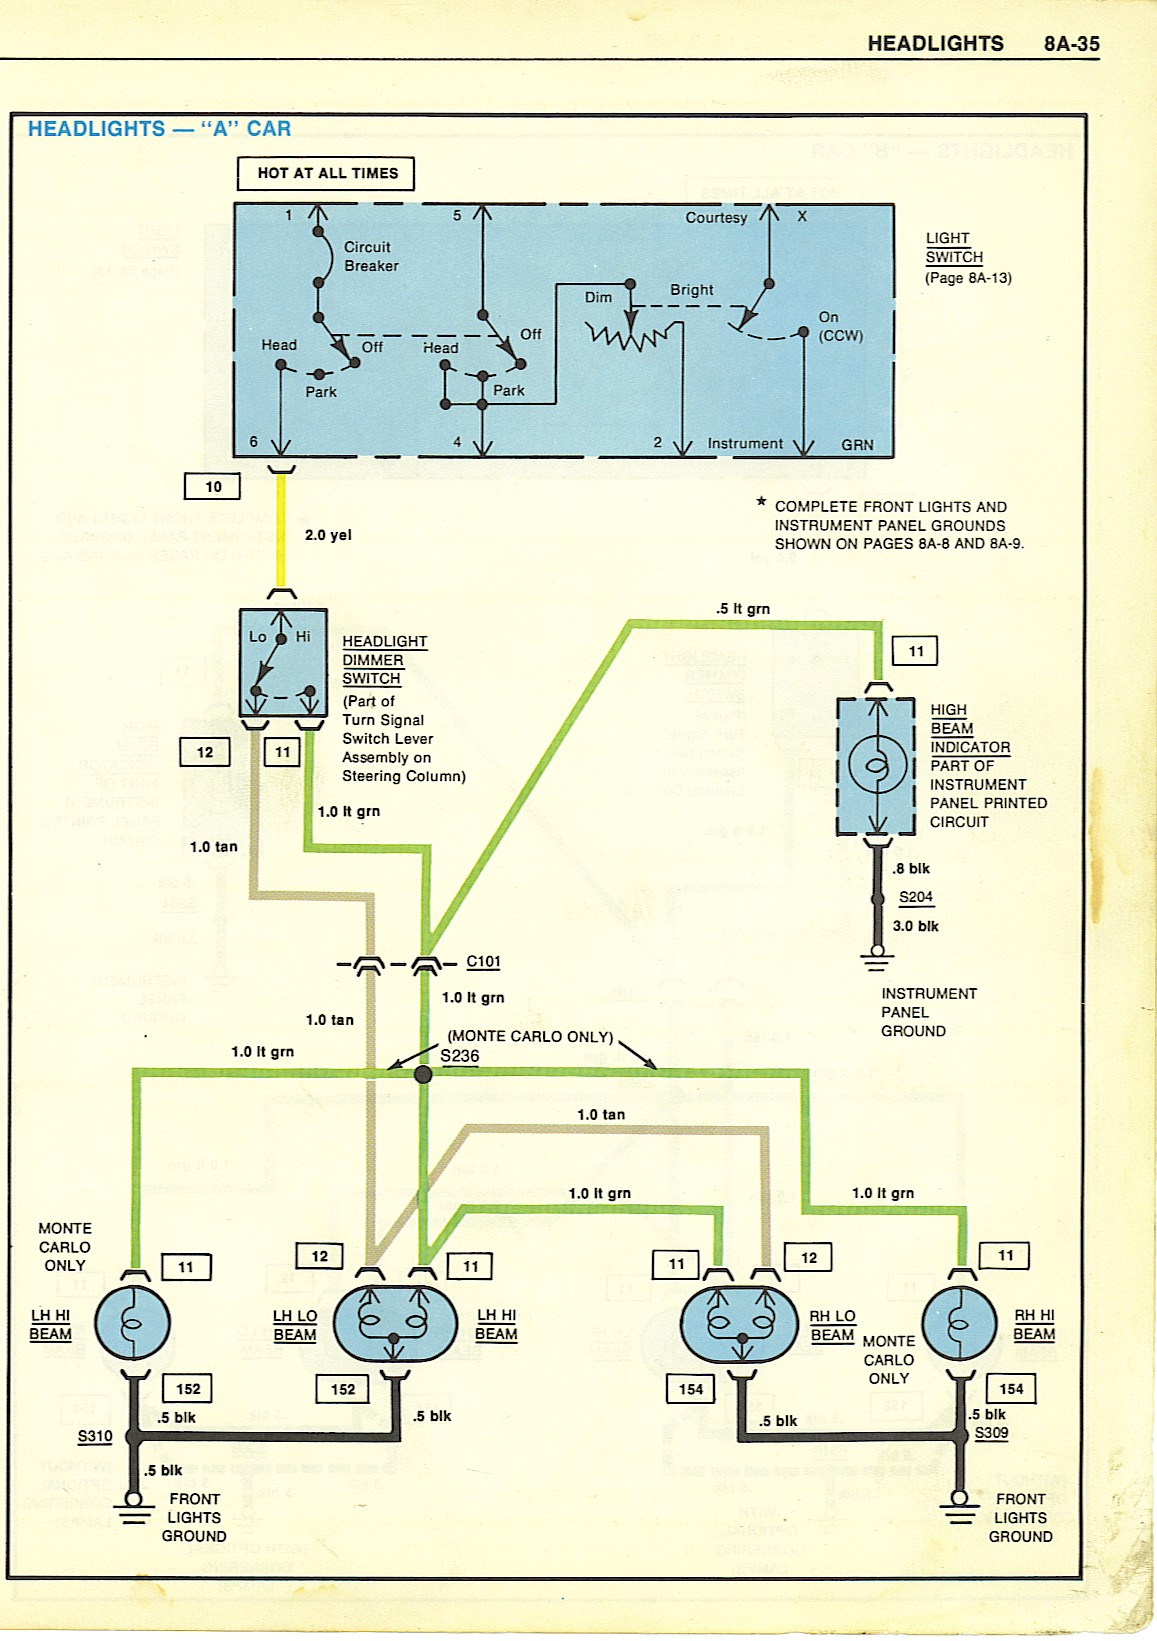 1992 Gm Headlight Switch Wiring Diagram Library Vw Light Diagrams